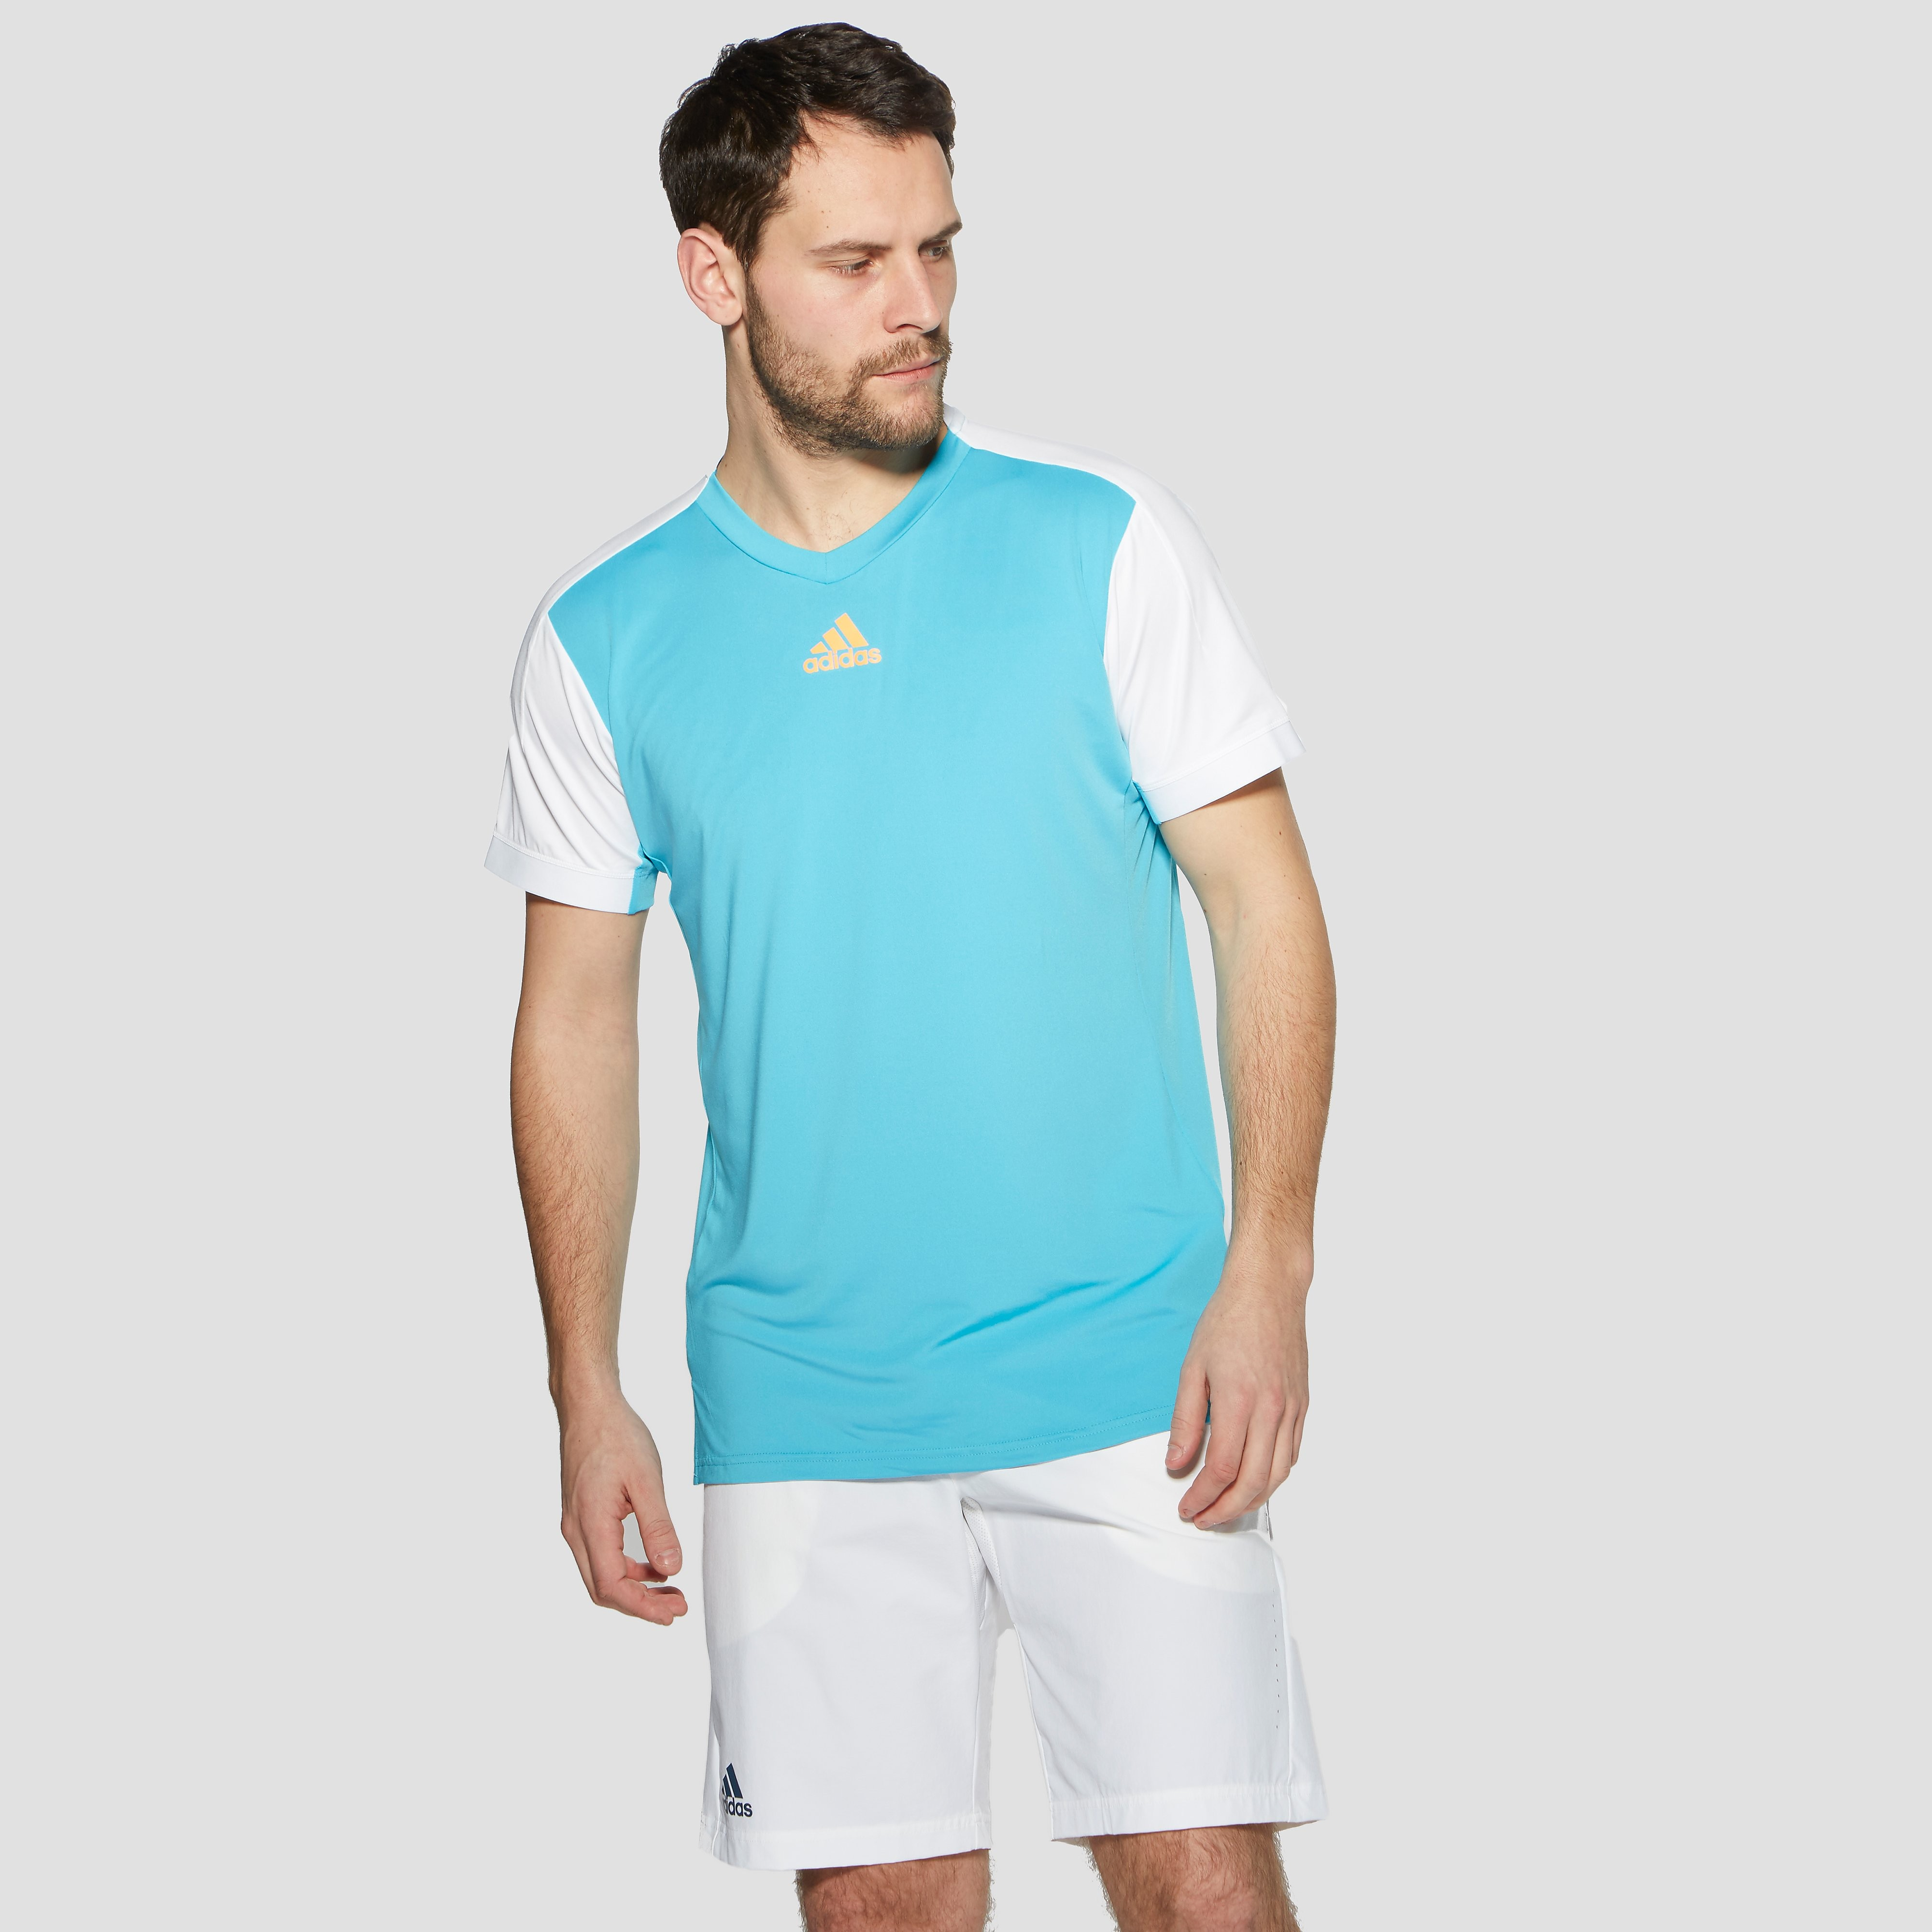 adidas Melbourne Men's Tennis T-shirt